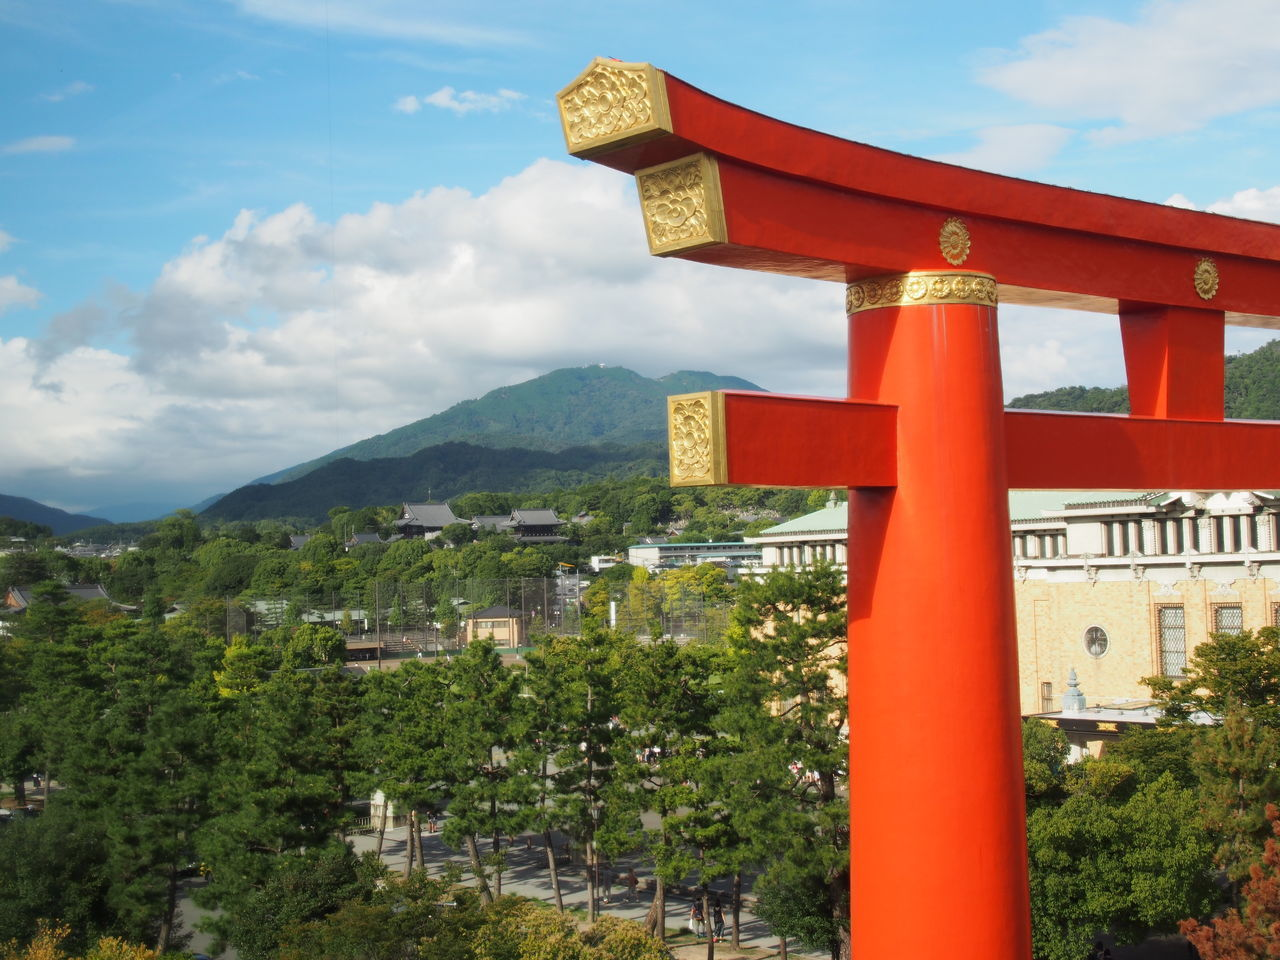 ASIA Architecture Blue Sky Day Green Color Hiei Mounten Hieizan Japan Japan Photography Japanese Colors Japanese Style Kan Kinki Outdoors Red Shrine Sky Sultry Day Torii Gate Vermilion